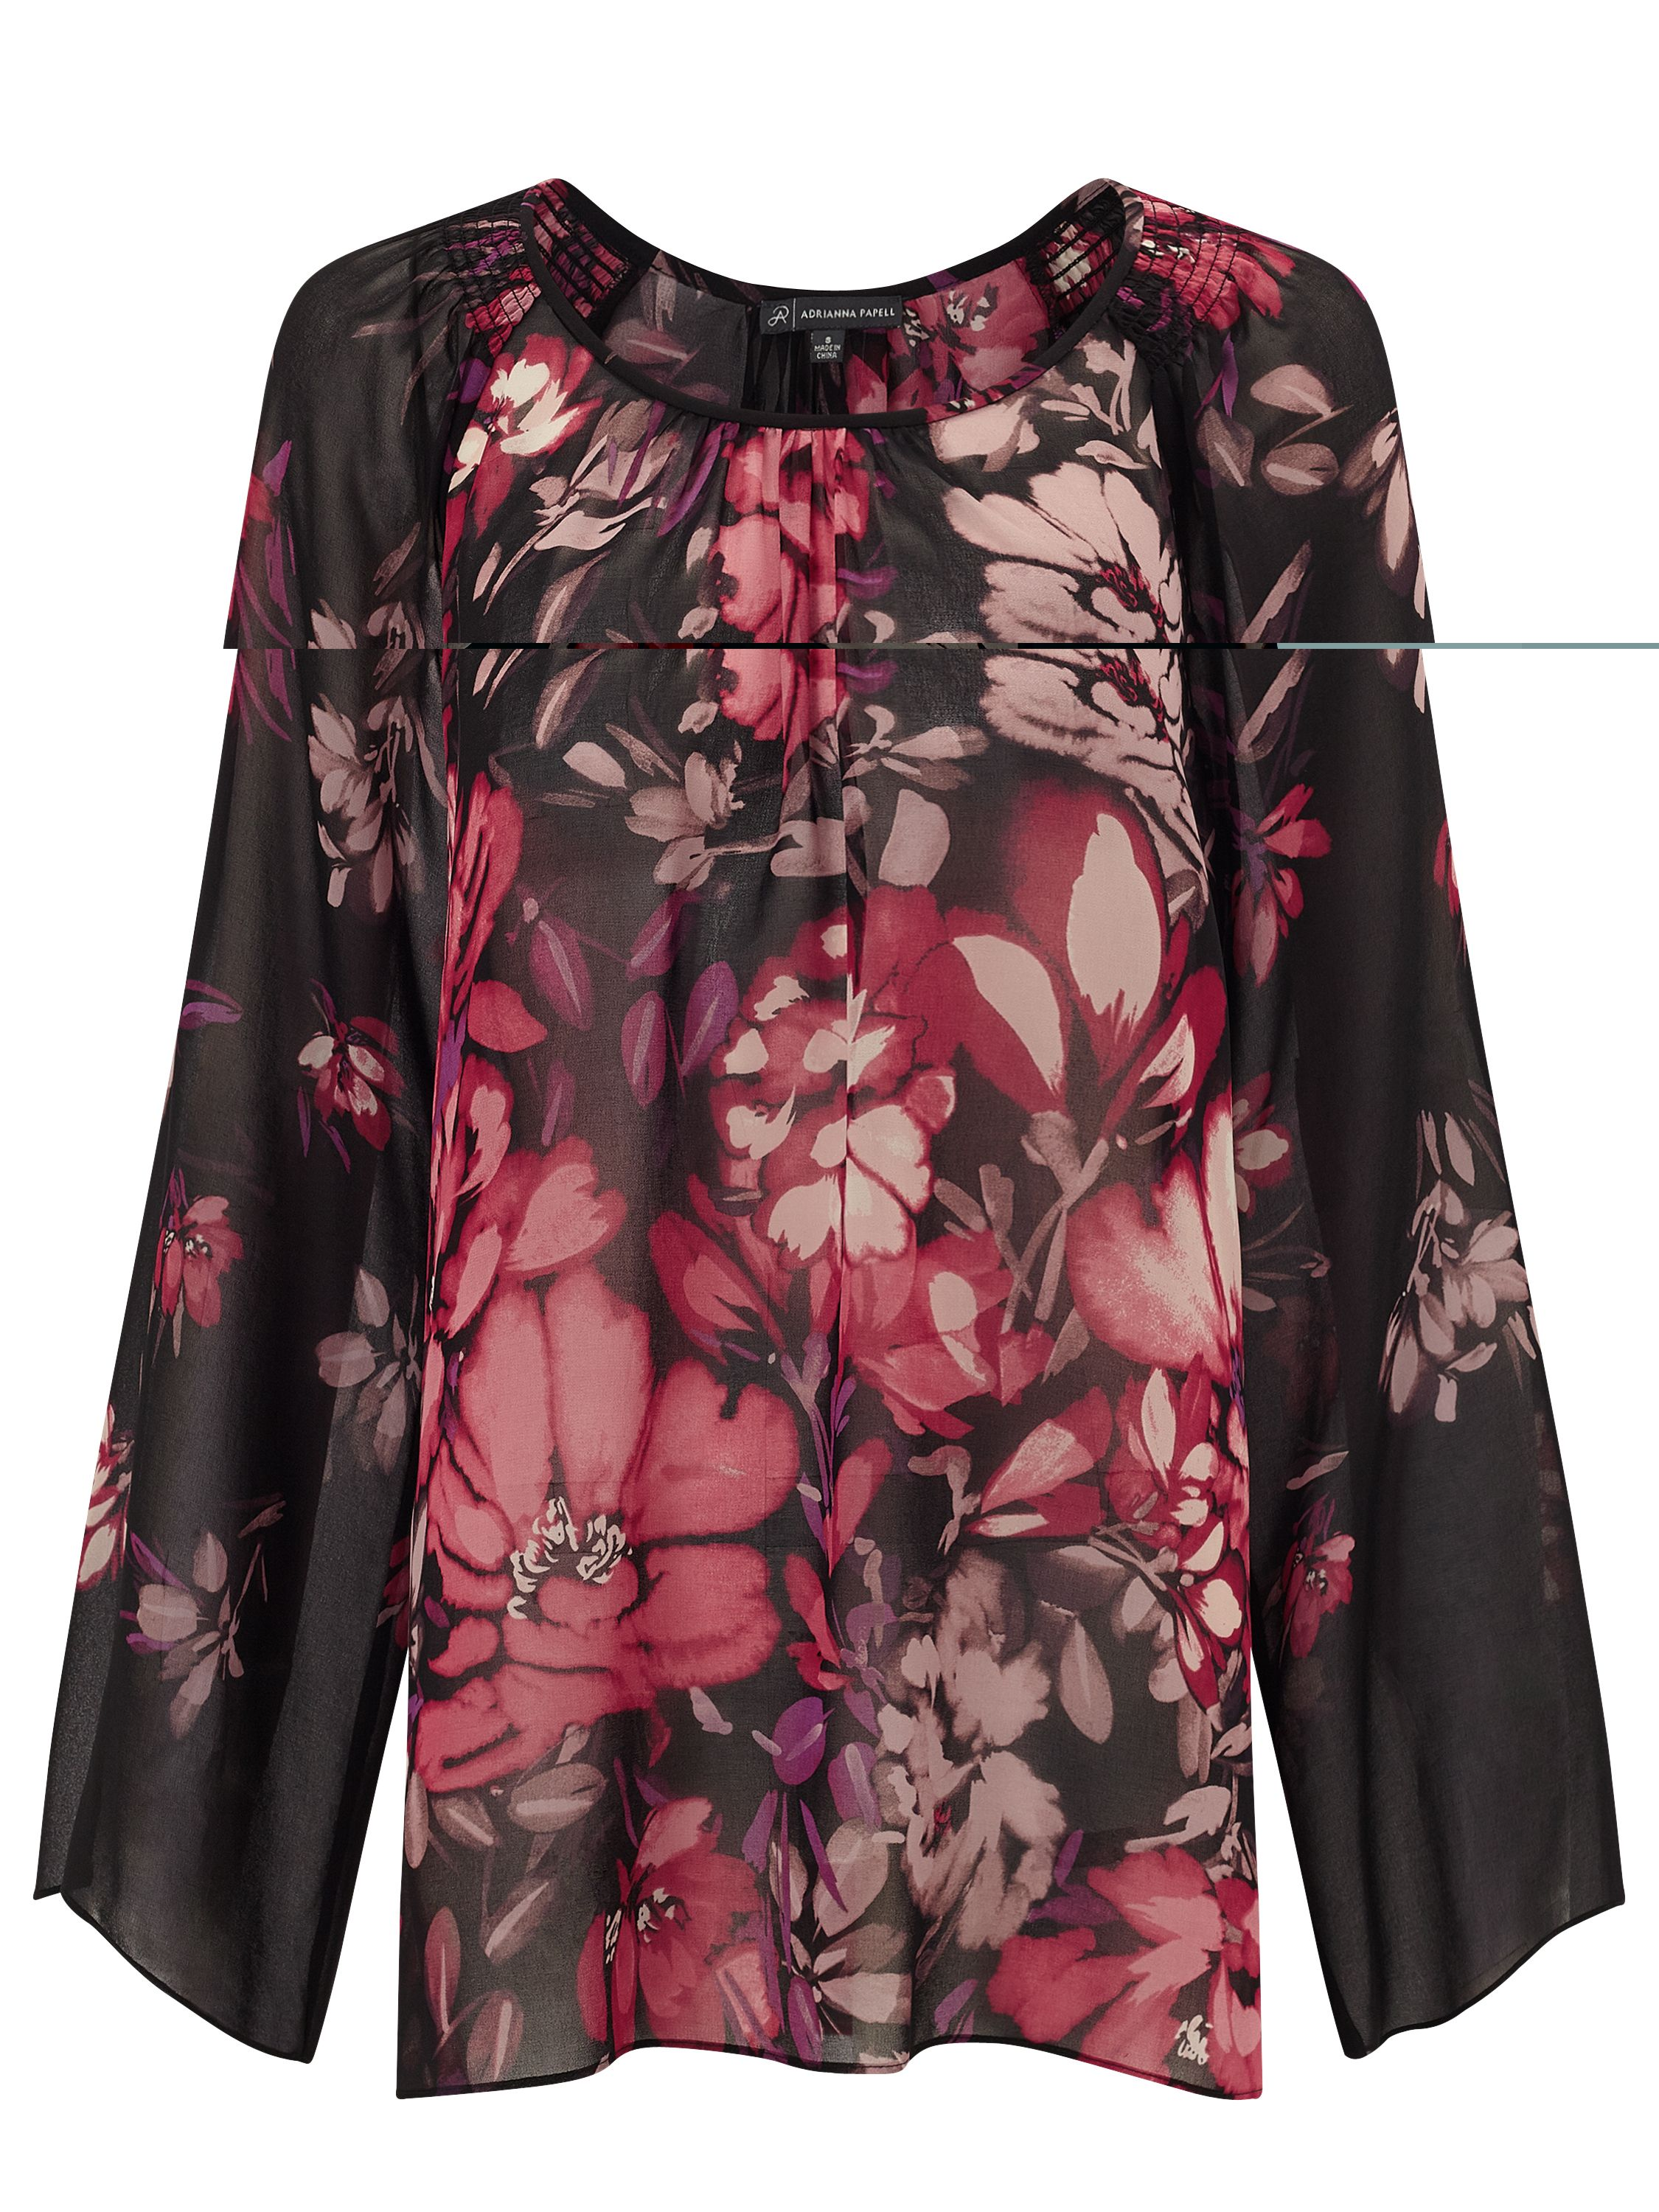 Adrianna Papell Black and pink floral top, Multi-Coloured